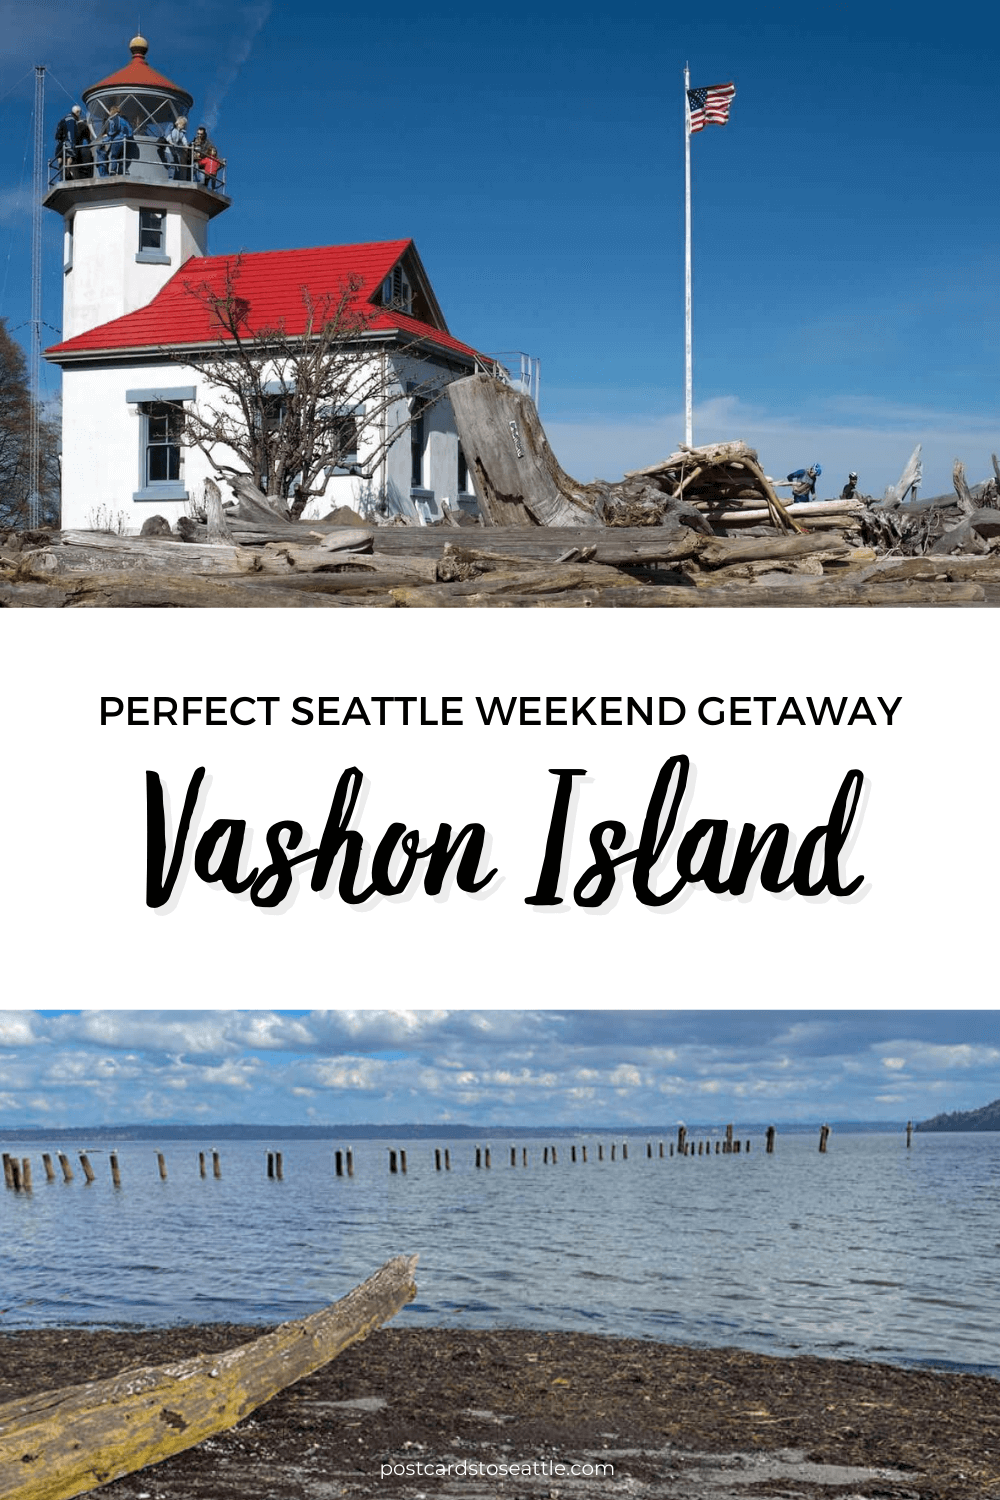 23 Amazing Things to Do on Vashon Island This Weekend